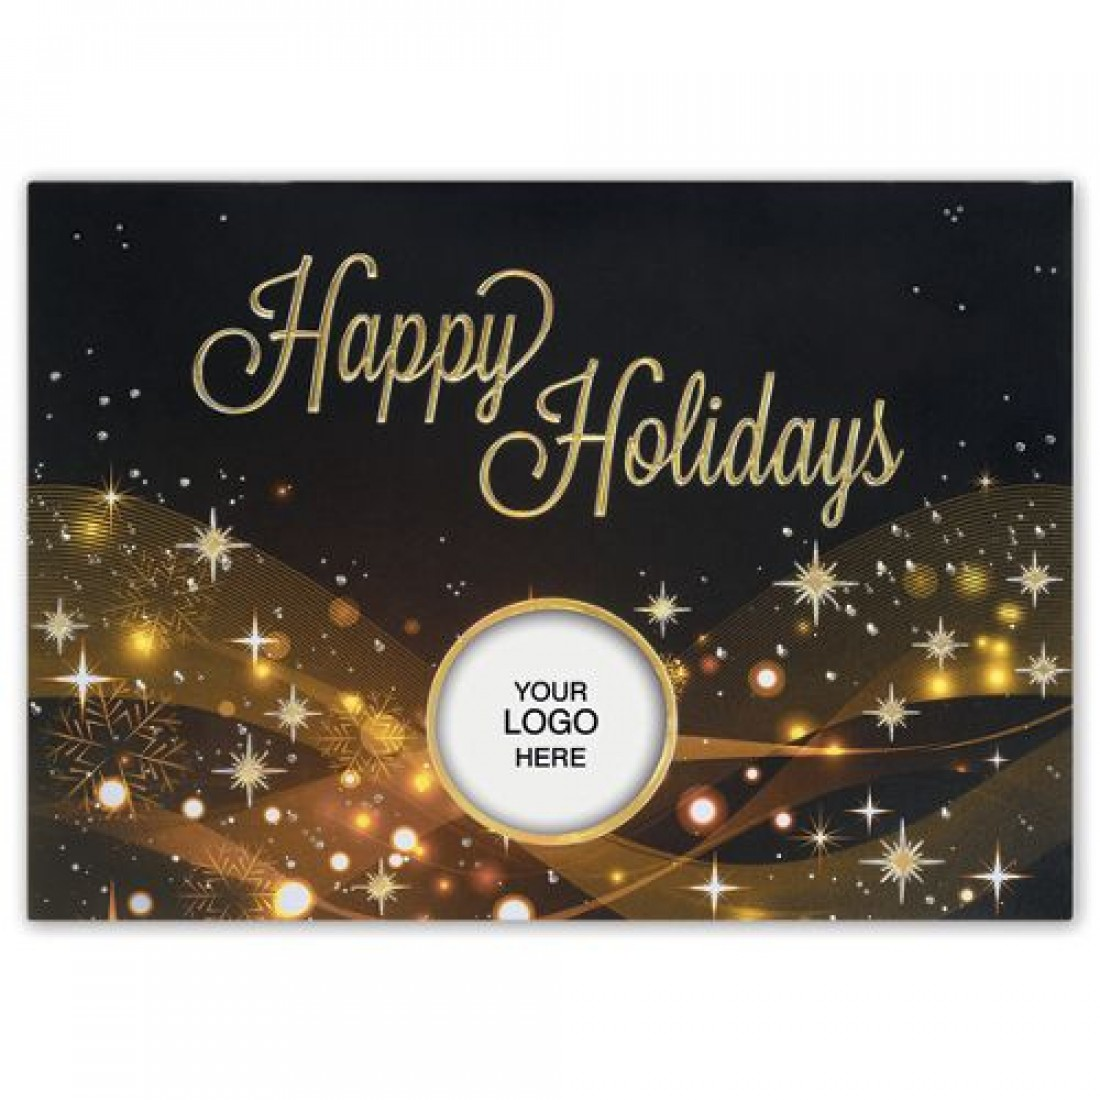 Simply Shine Holiday Cards